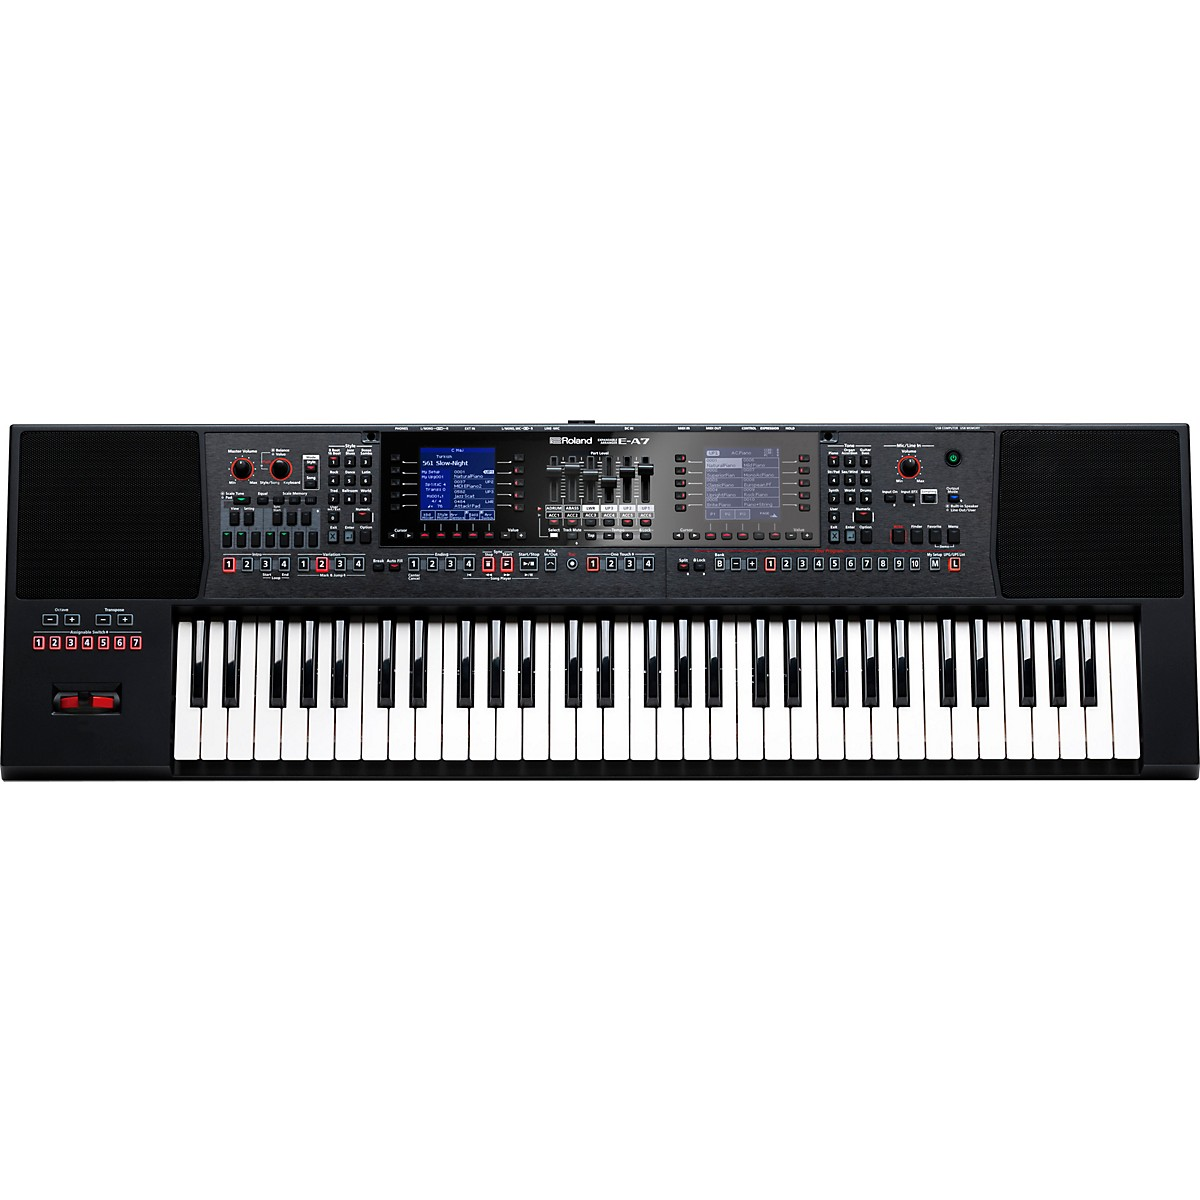 Roland E-A7 Arranger Keyboard